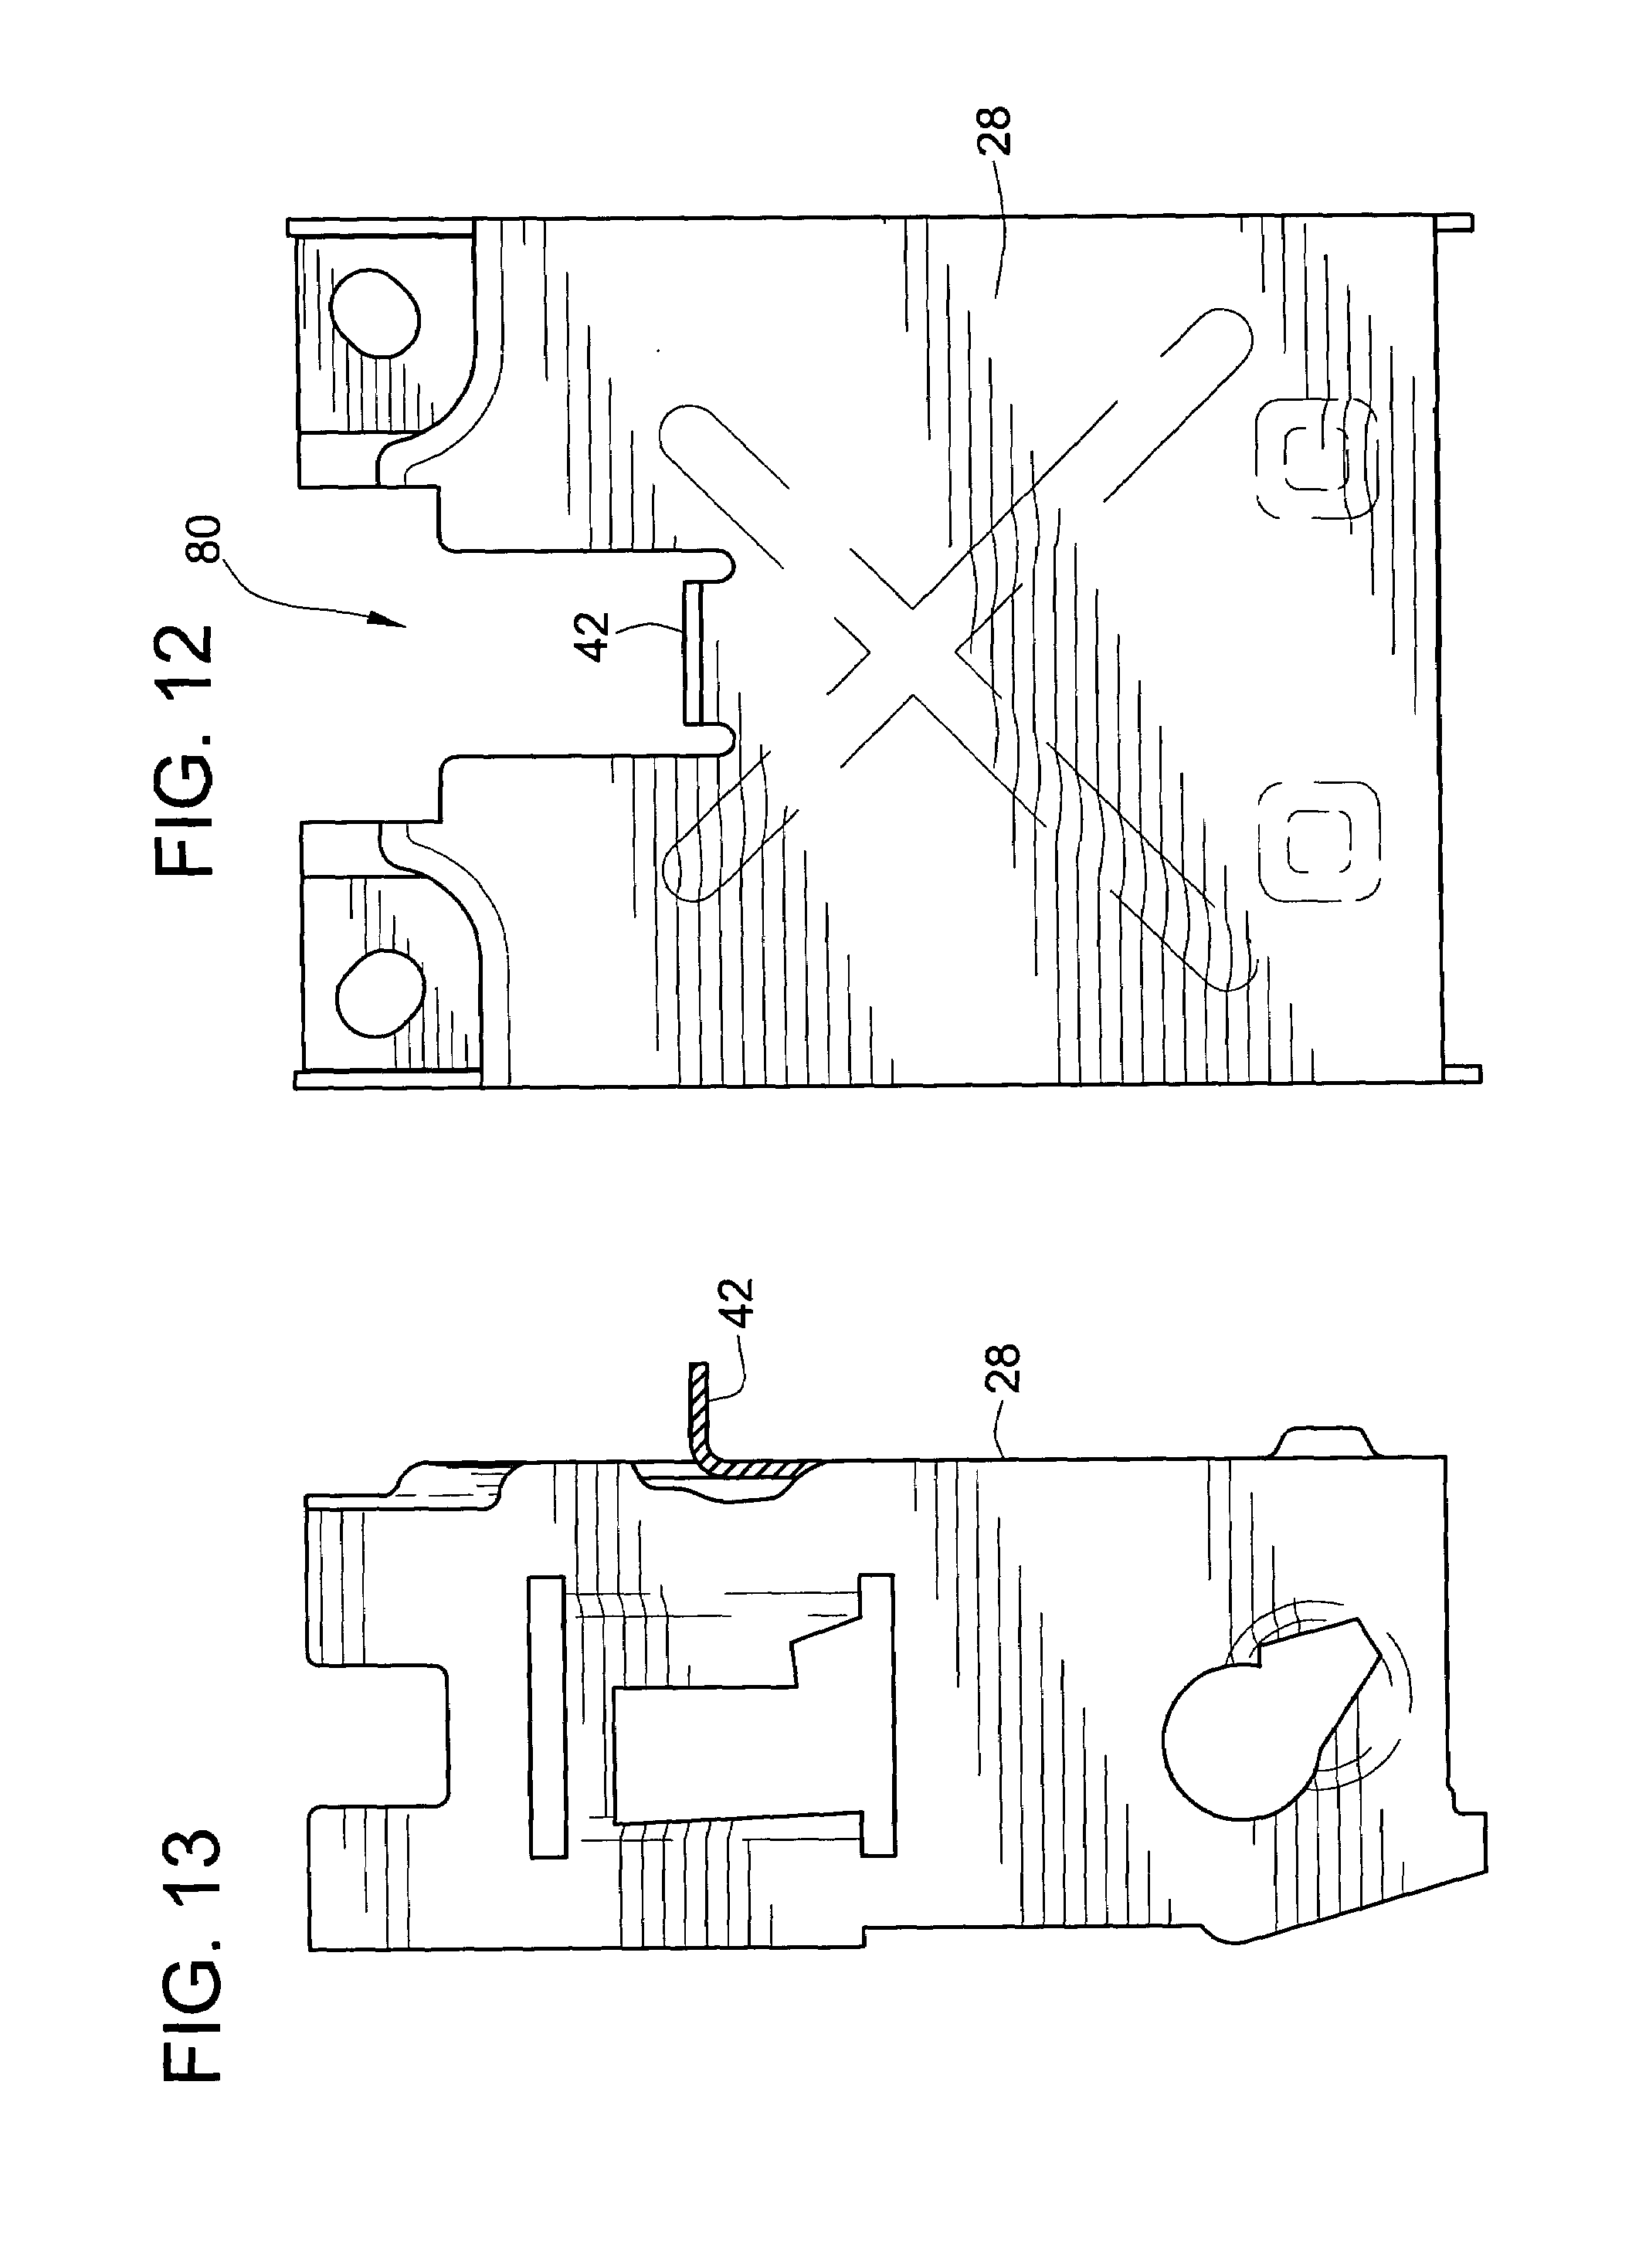 patent us6910342 - high temperature limit thermostat with manual lockout safety